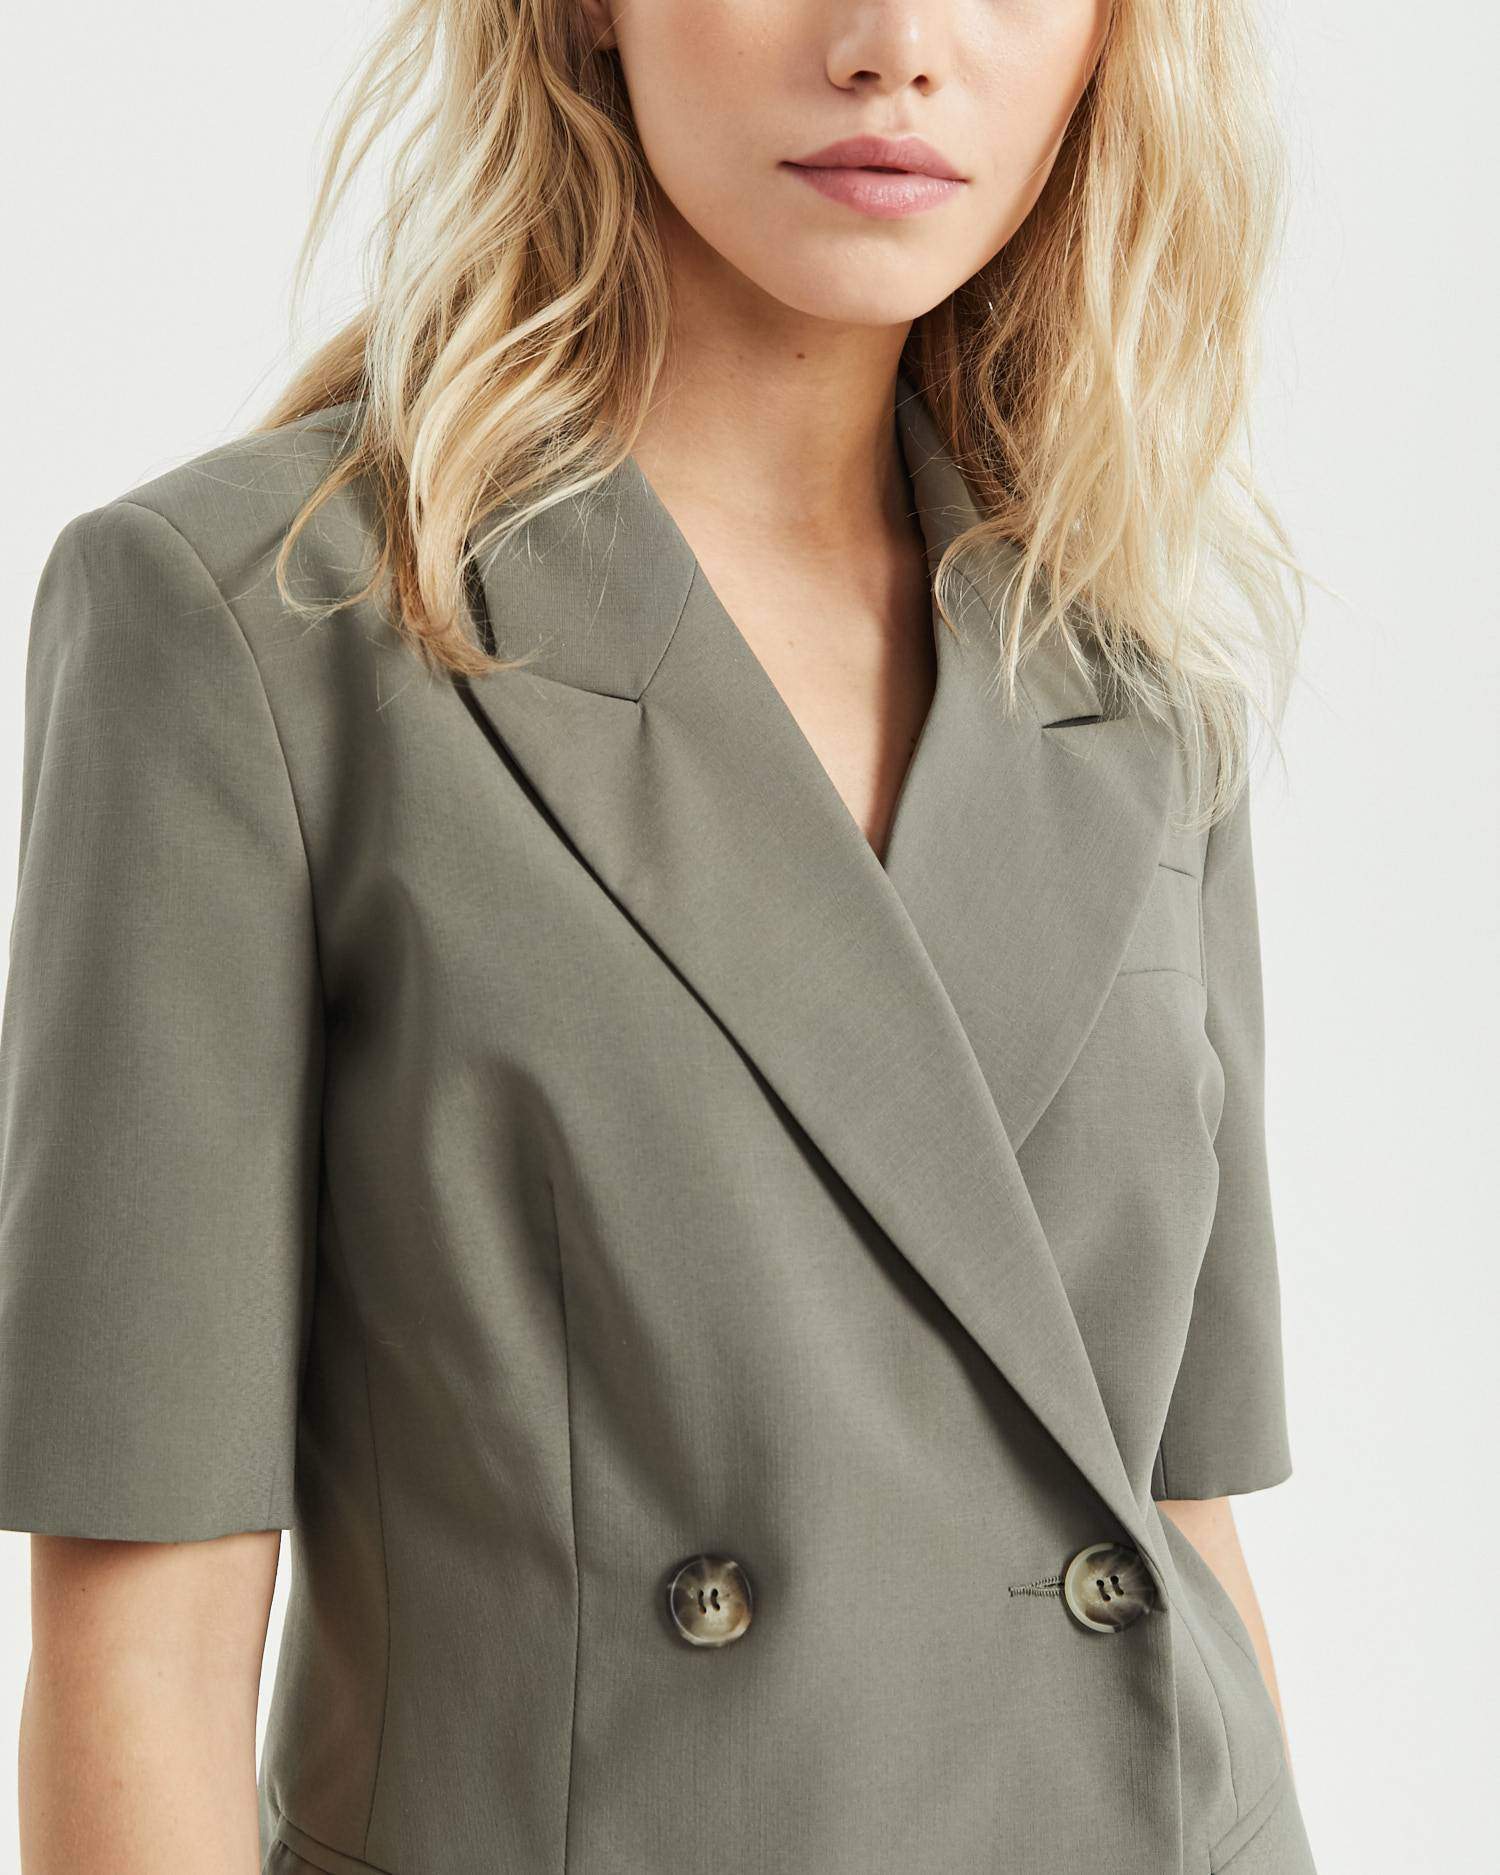 Fitted cropped sleeve jacket